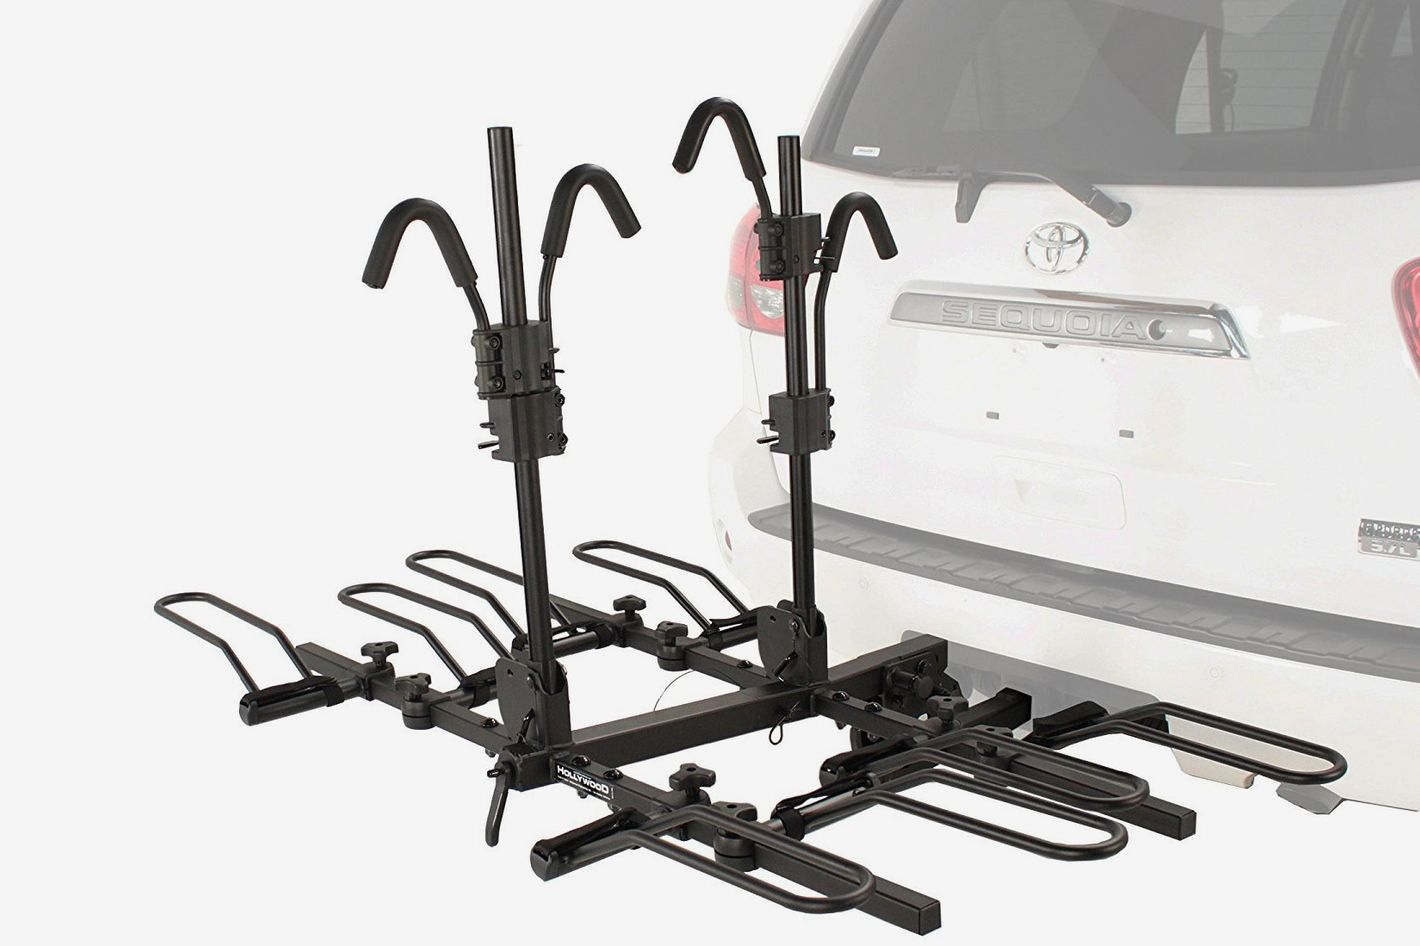 Hollywood Racks HR1400 Sport Rider SE 4-Bike Platform Style Hitch Mount Rack